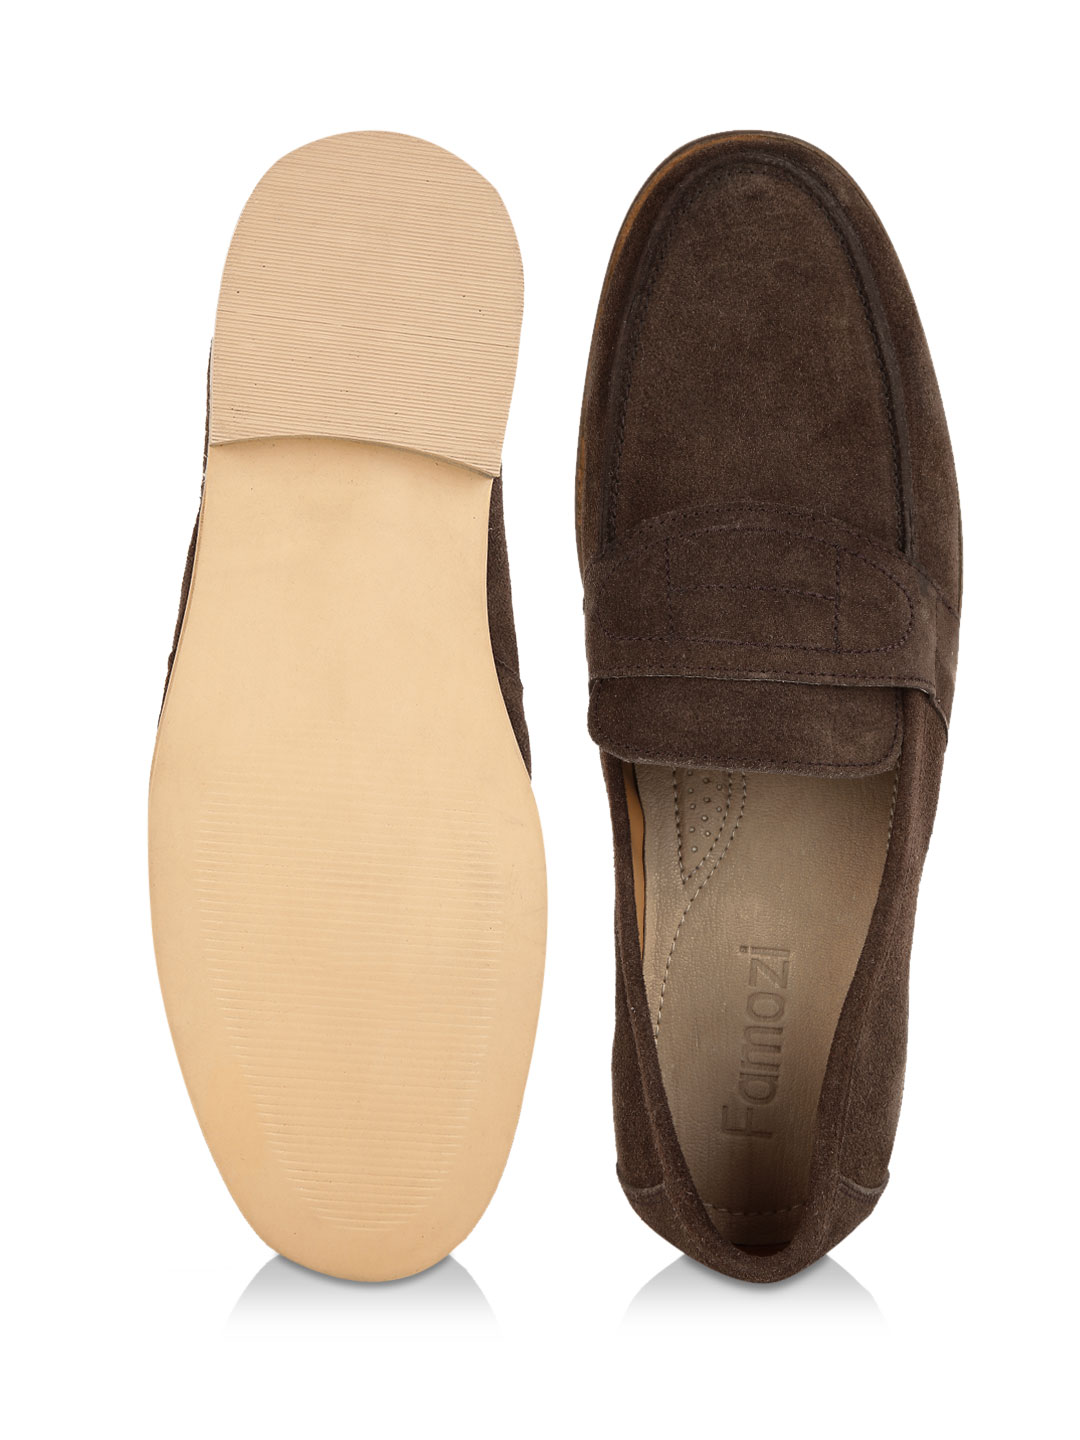 Buy Famozi Brown Penny Loafer Shoes for Men Online in India